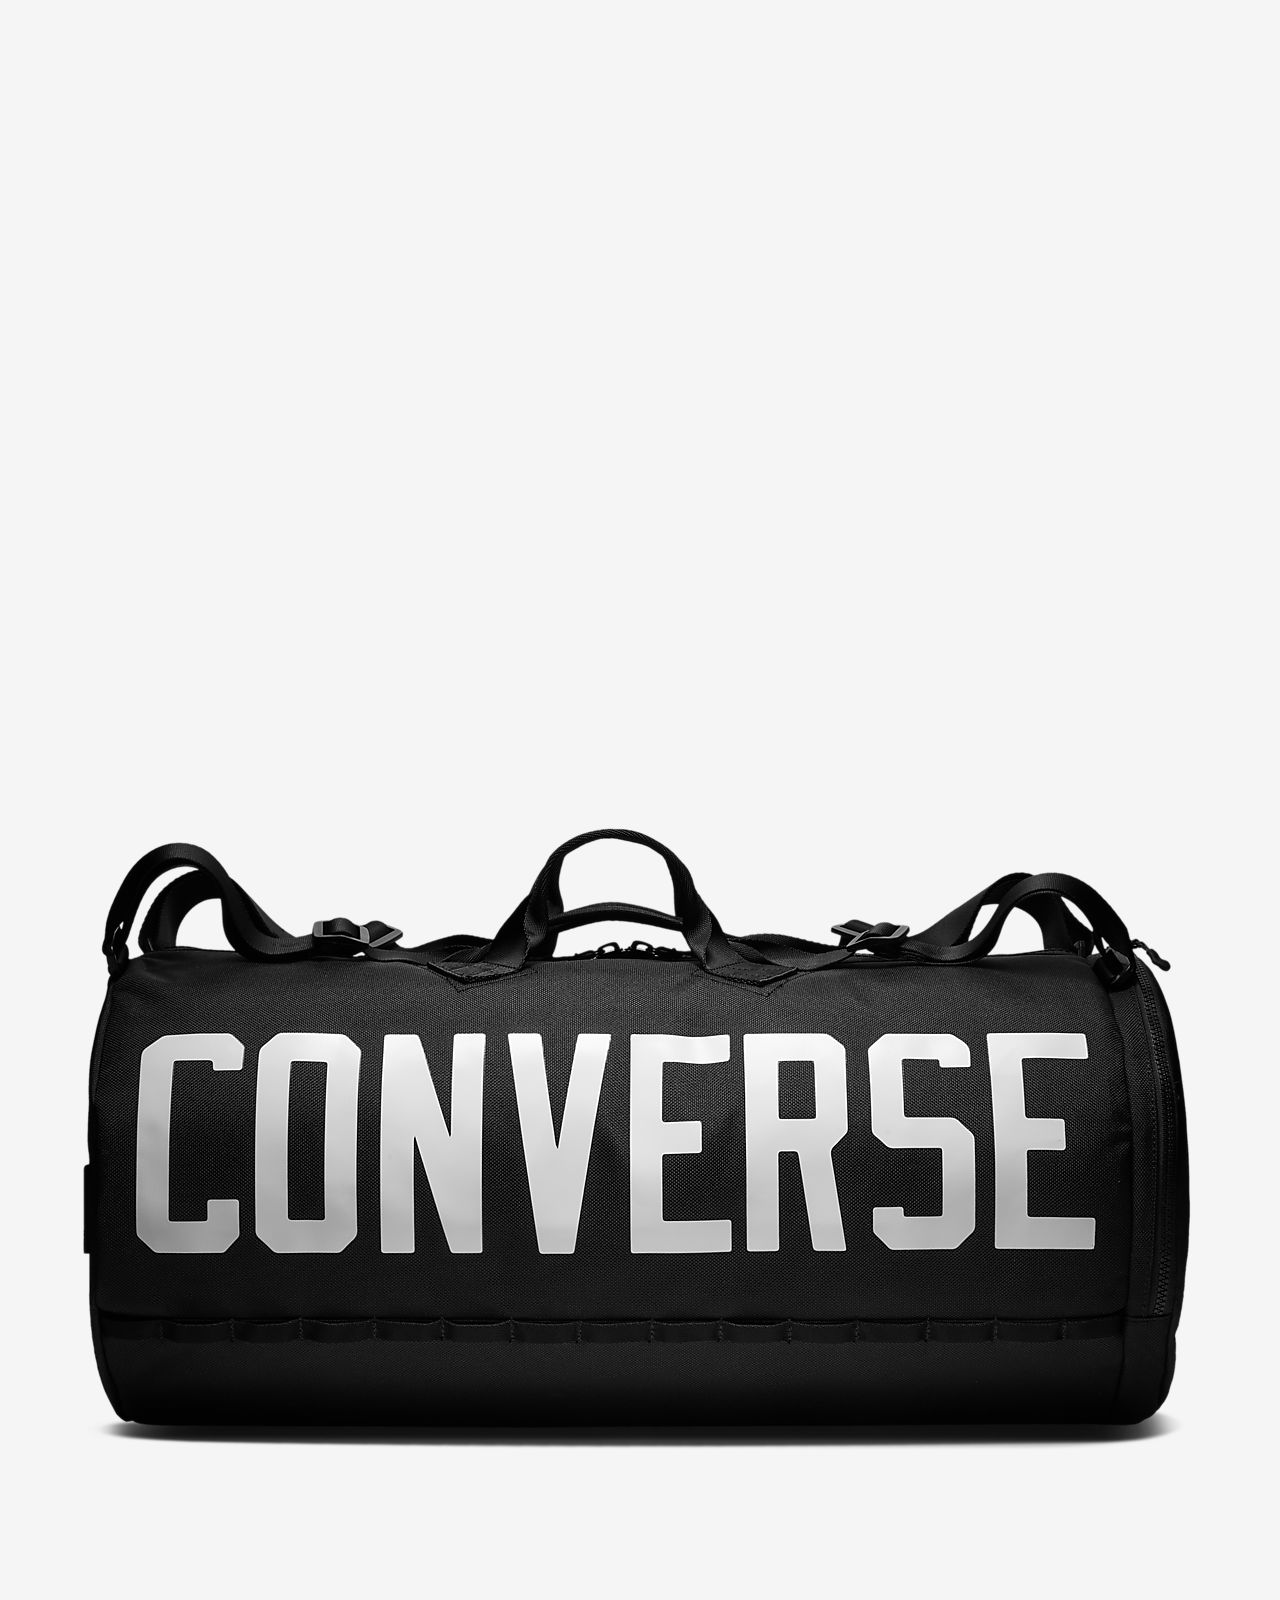 Converse 3-Way Duffel Bag